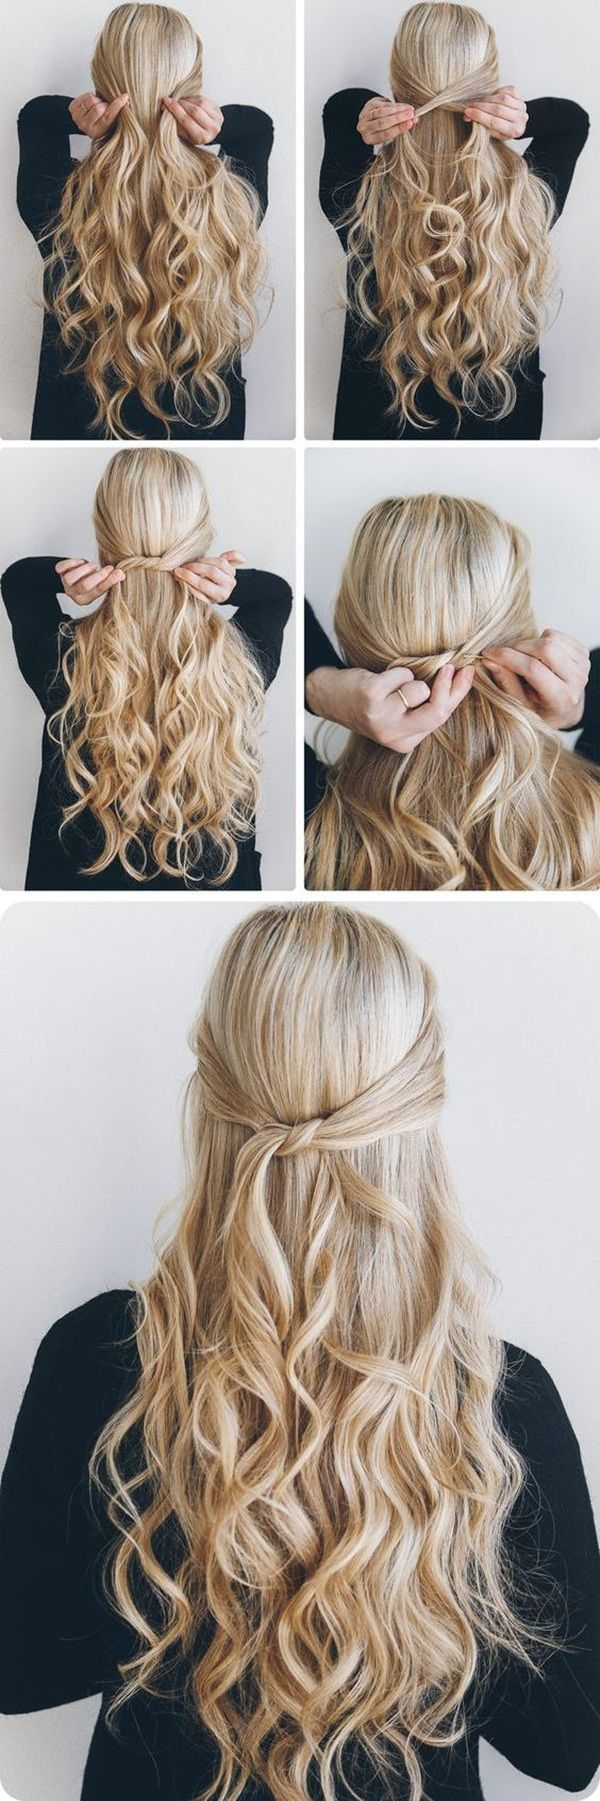 Outstanding 1000 Ideas About Easy Hairstyles On Pinterest Hairstyles For Hairstyles For Men Maxibearus